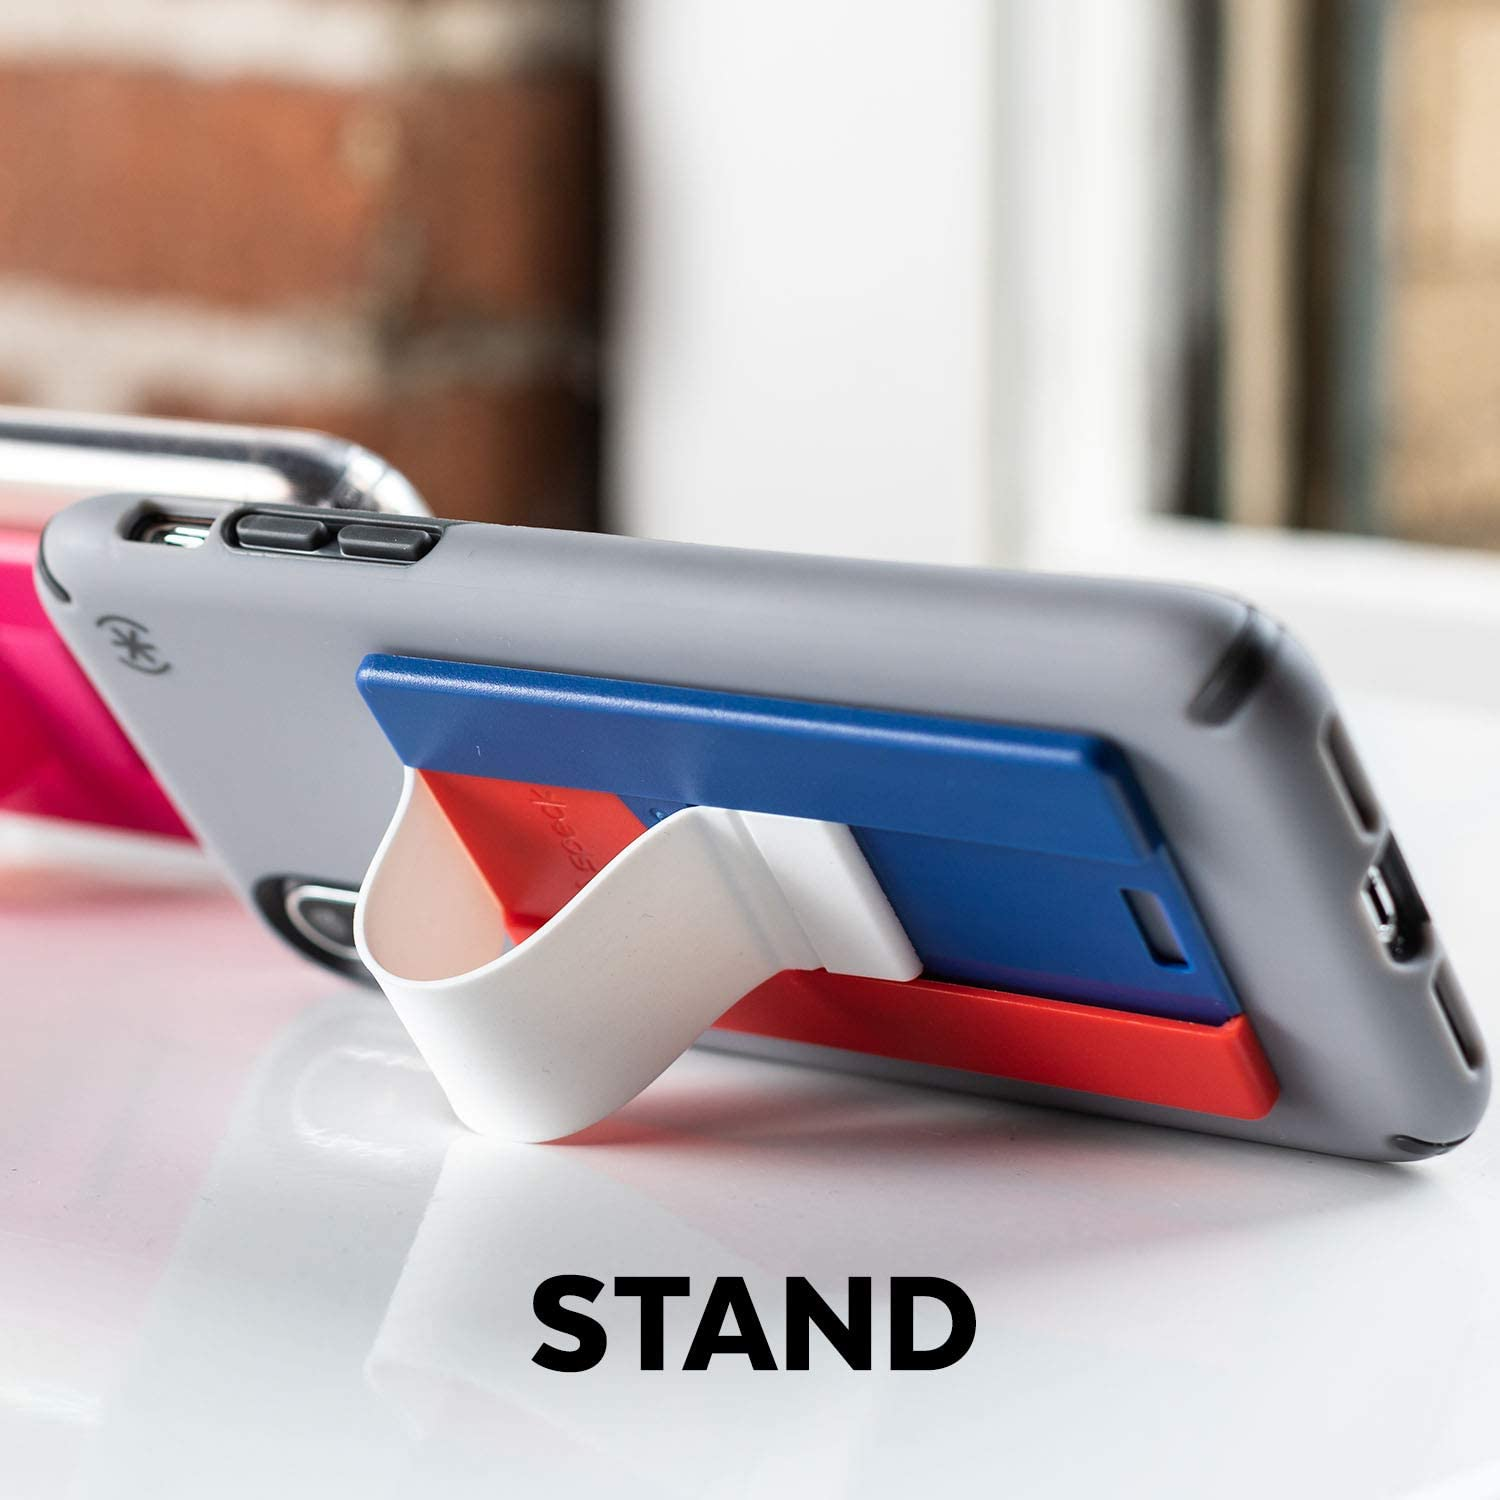 Speck Products GrabTab Cell Phone Holder and Stand Casette Yellow Cases Works With Most Cell Phones